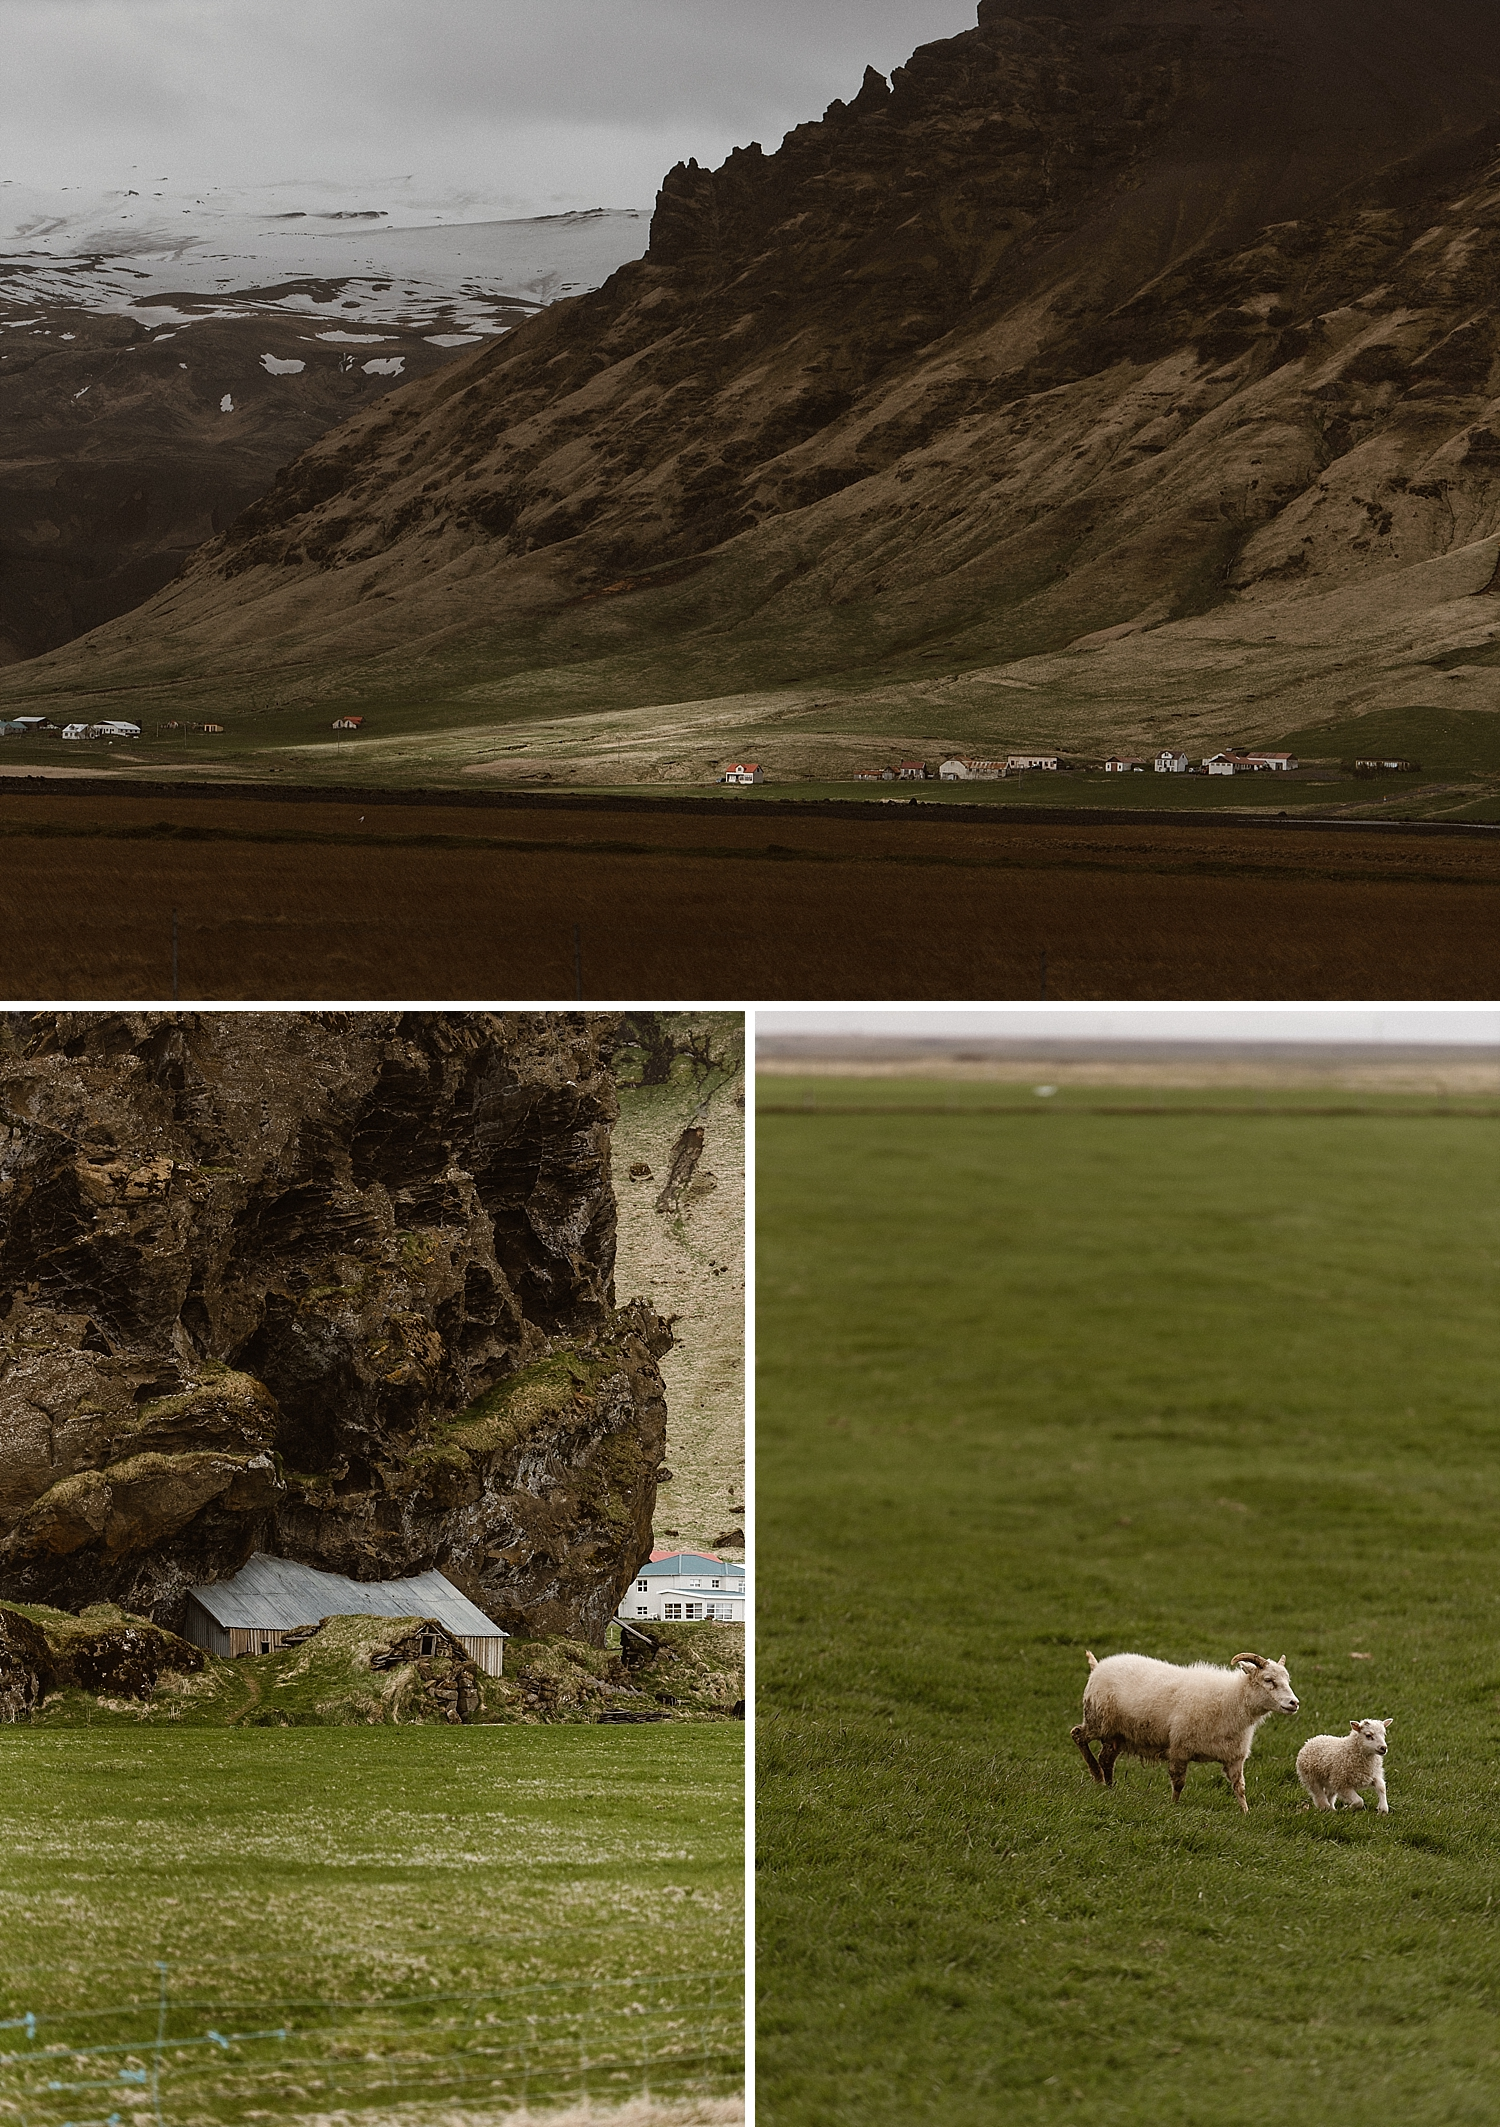 The Icelandic landscape seems to change constantly. From fields of green that are homes to fuzzy farm animals to sweeping mountains and deep blue seas. Iceland is an incredible backdrop for an adventurous intimate elopement!